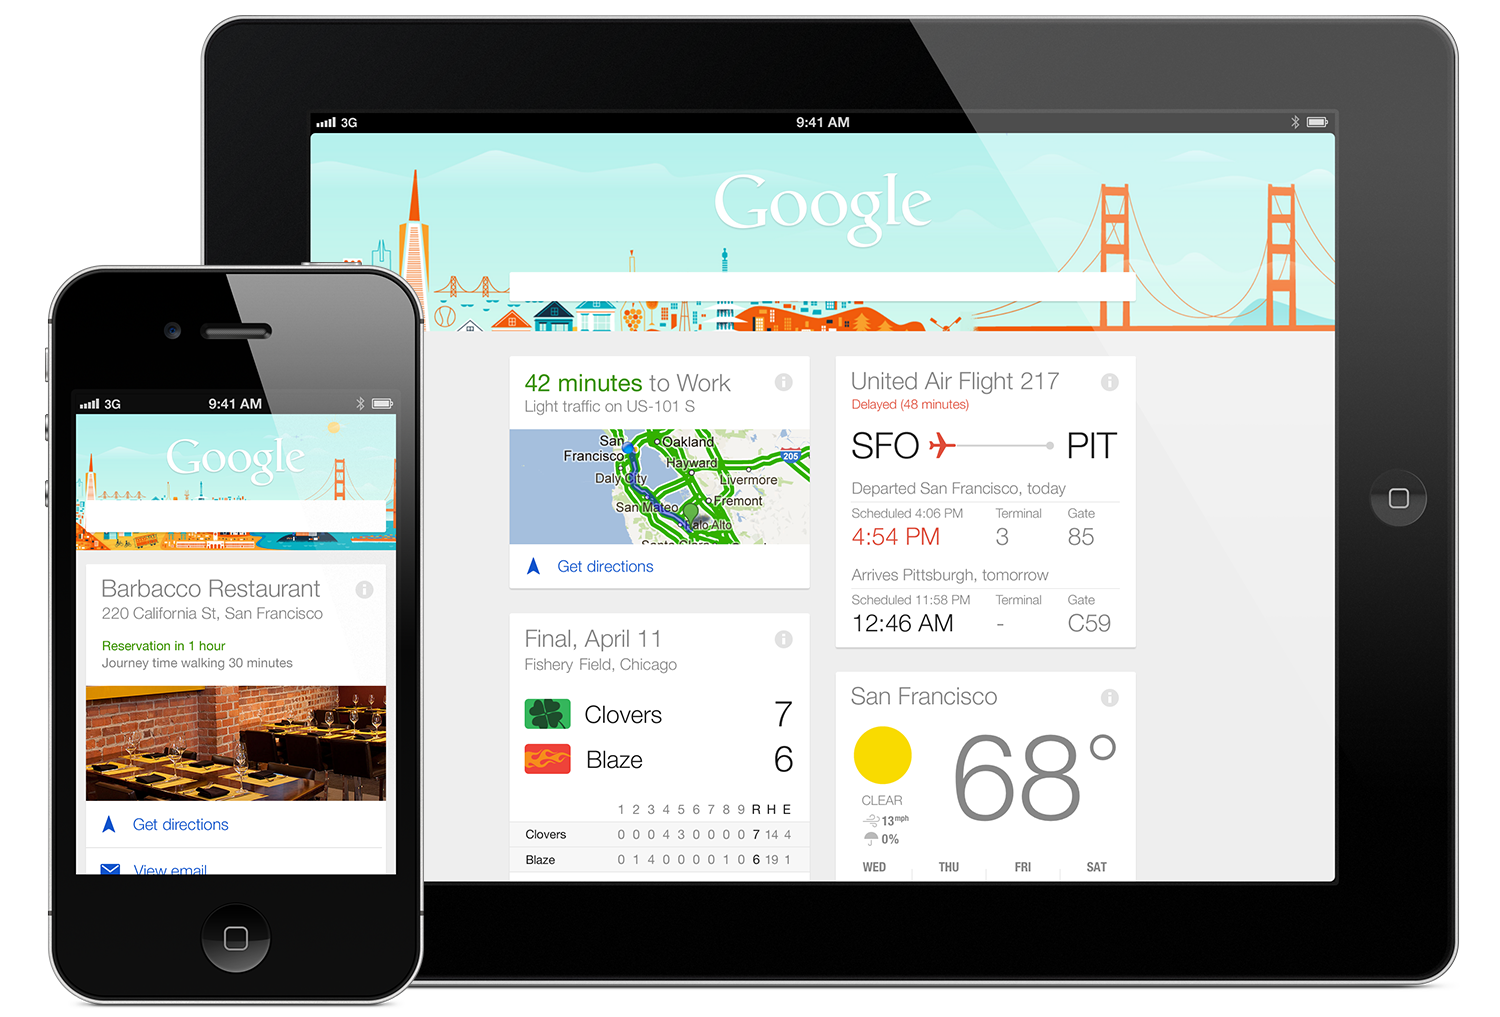 Https Googleblog Blogspot Com 2013 04 Google Now On Your Iphone And Ipad With Html